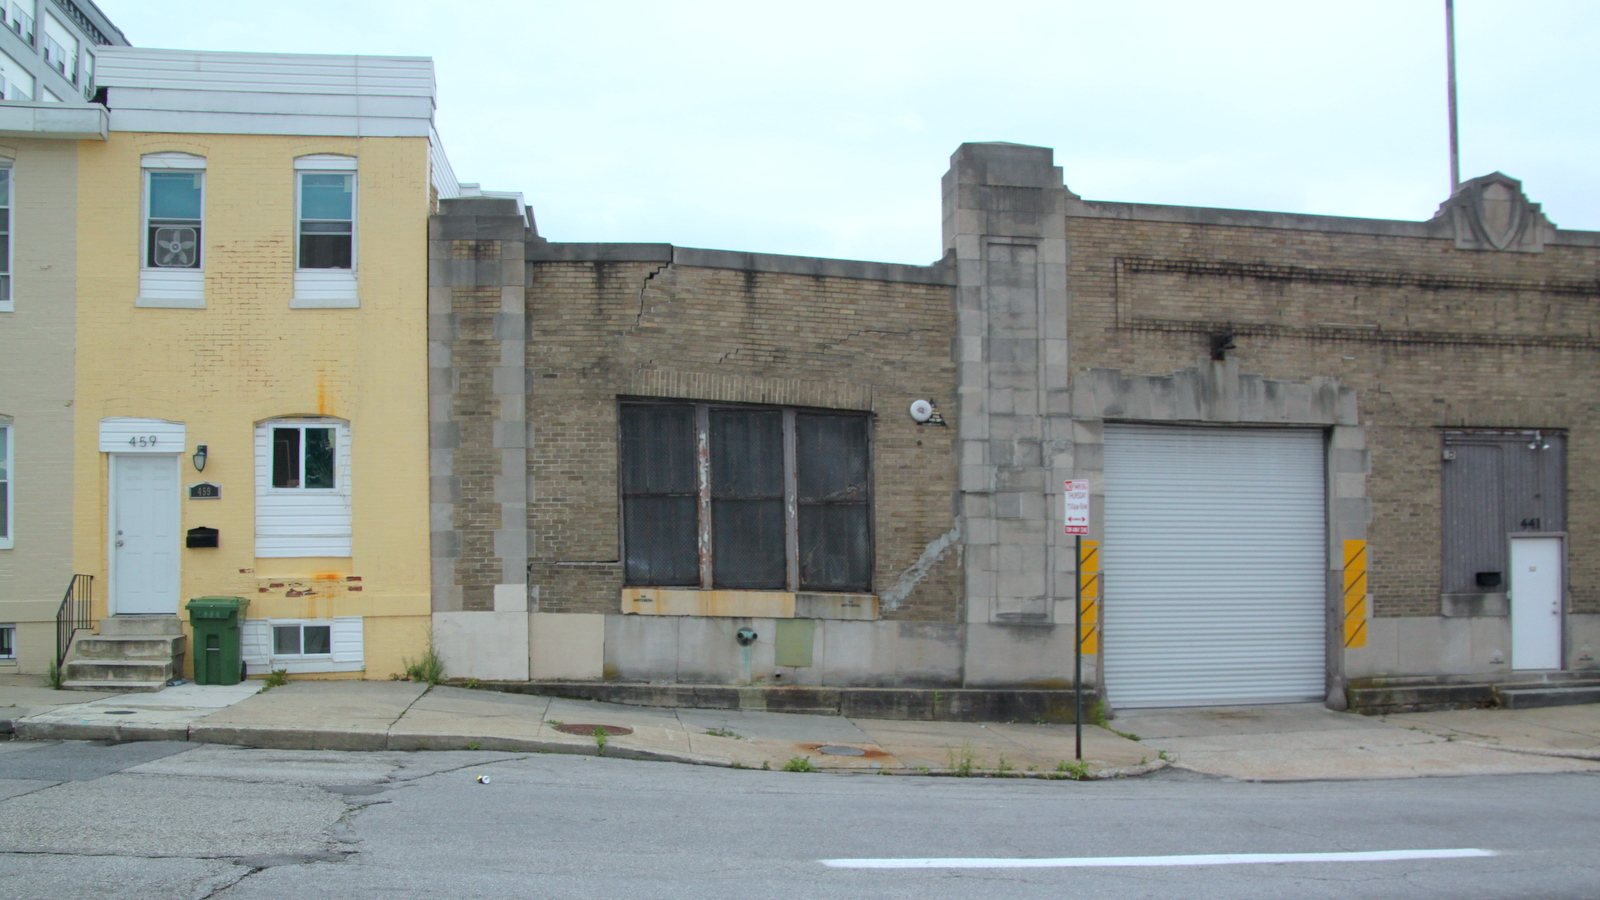 Directly across from 428 East Preston, the Old Post Office Garage building is also slumping. (Fern Shen)